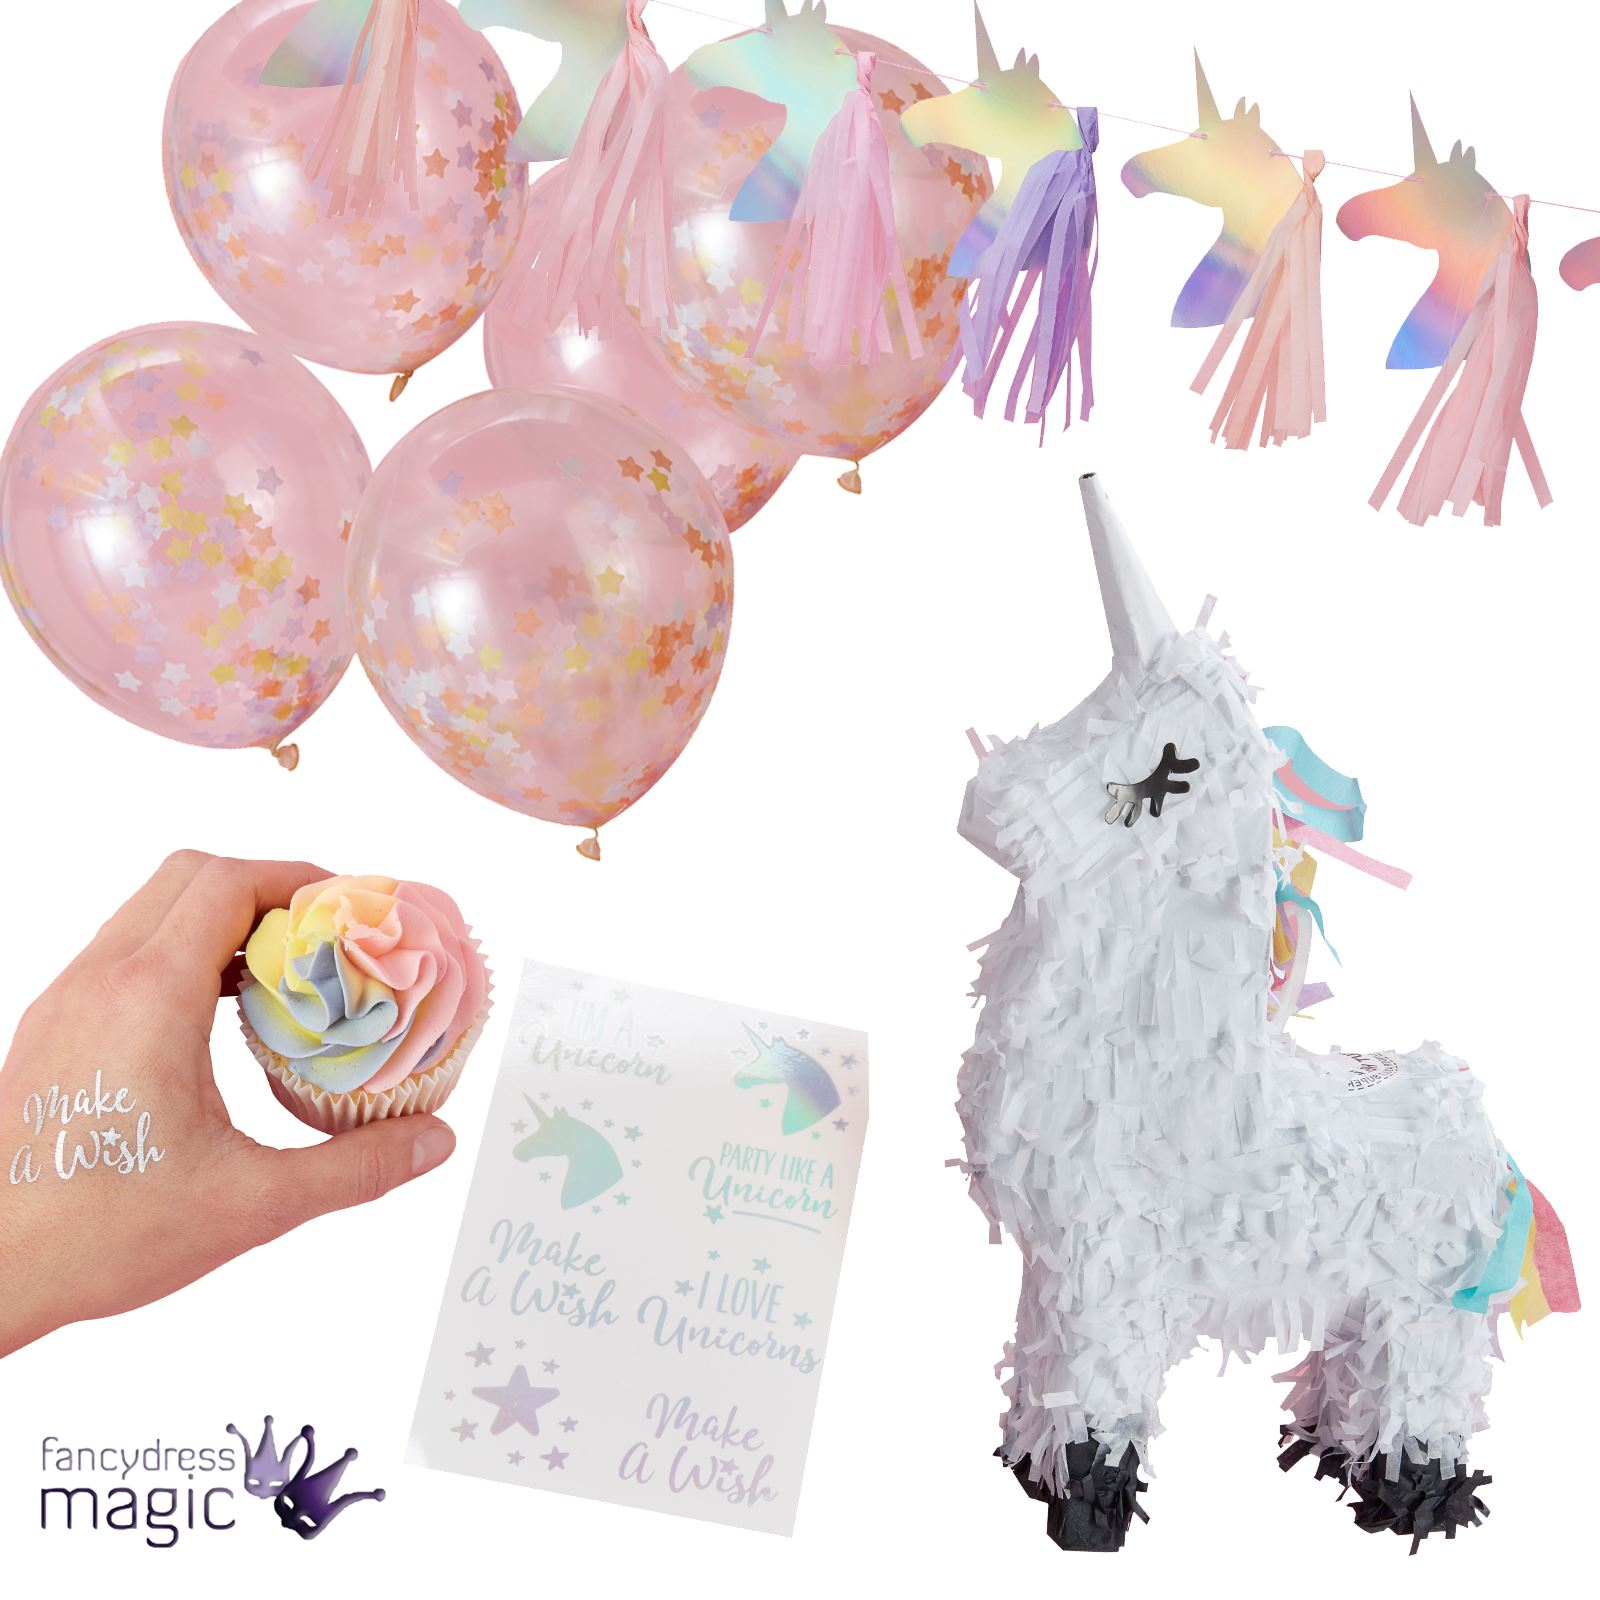 cae2c87b57f95 Ginger Ray Make A Wish Unicorn Iridescent Ombre Party Rainbow Complete Set  Kit